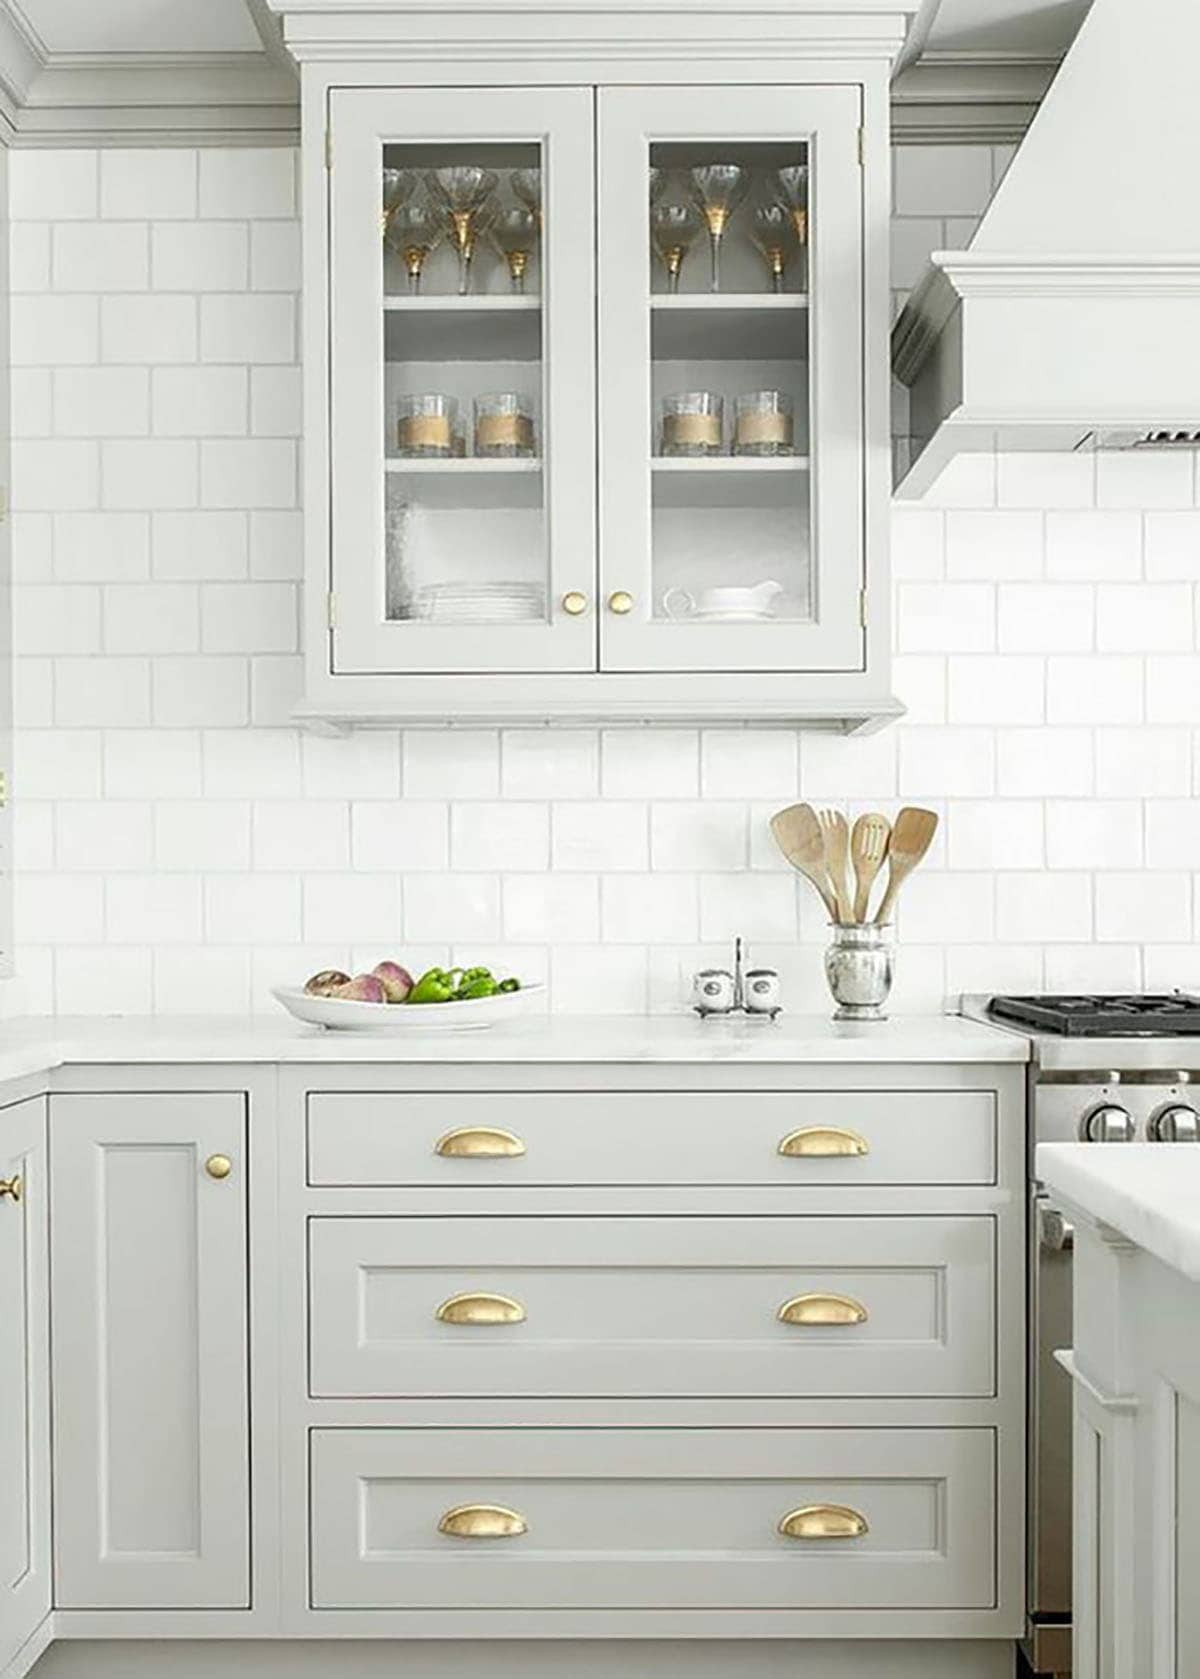 http://www.jillianharris.com/end-era-no-white-kitchens/